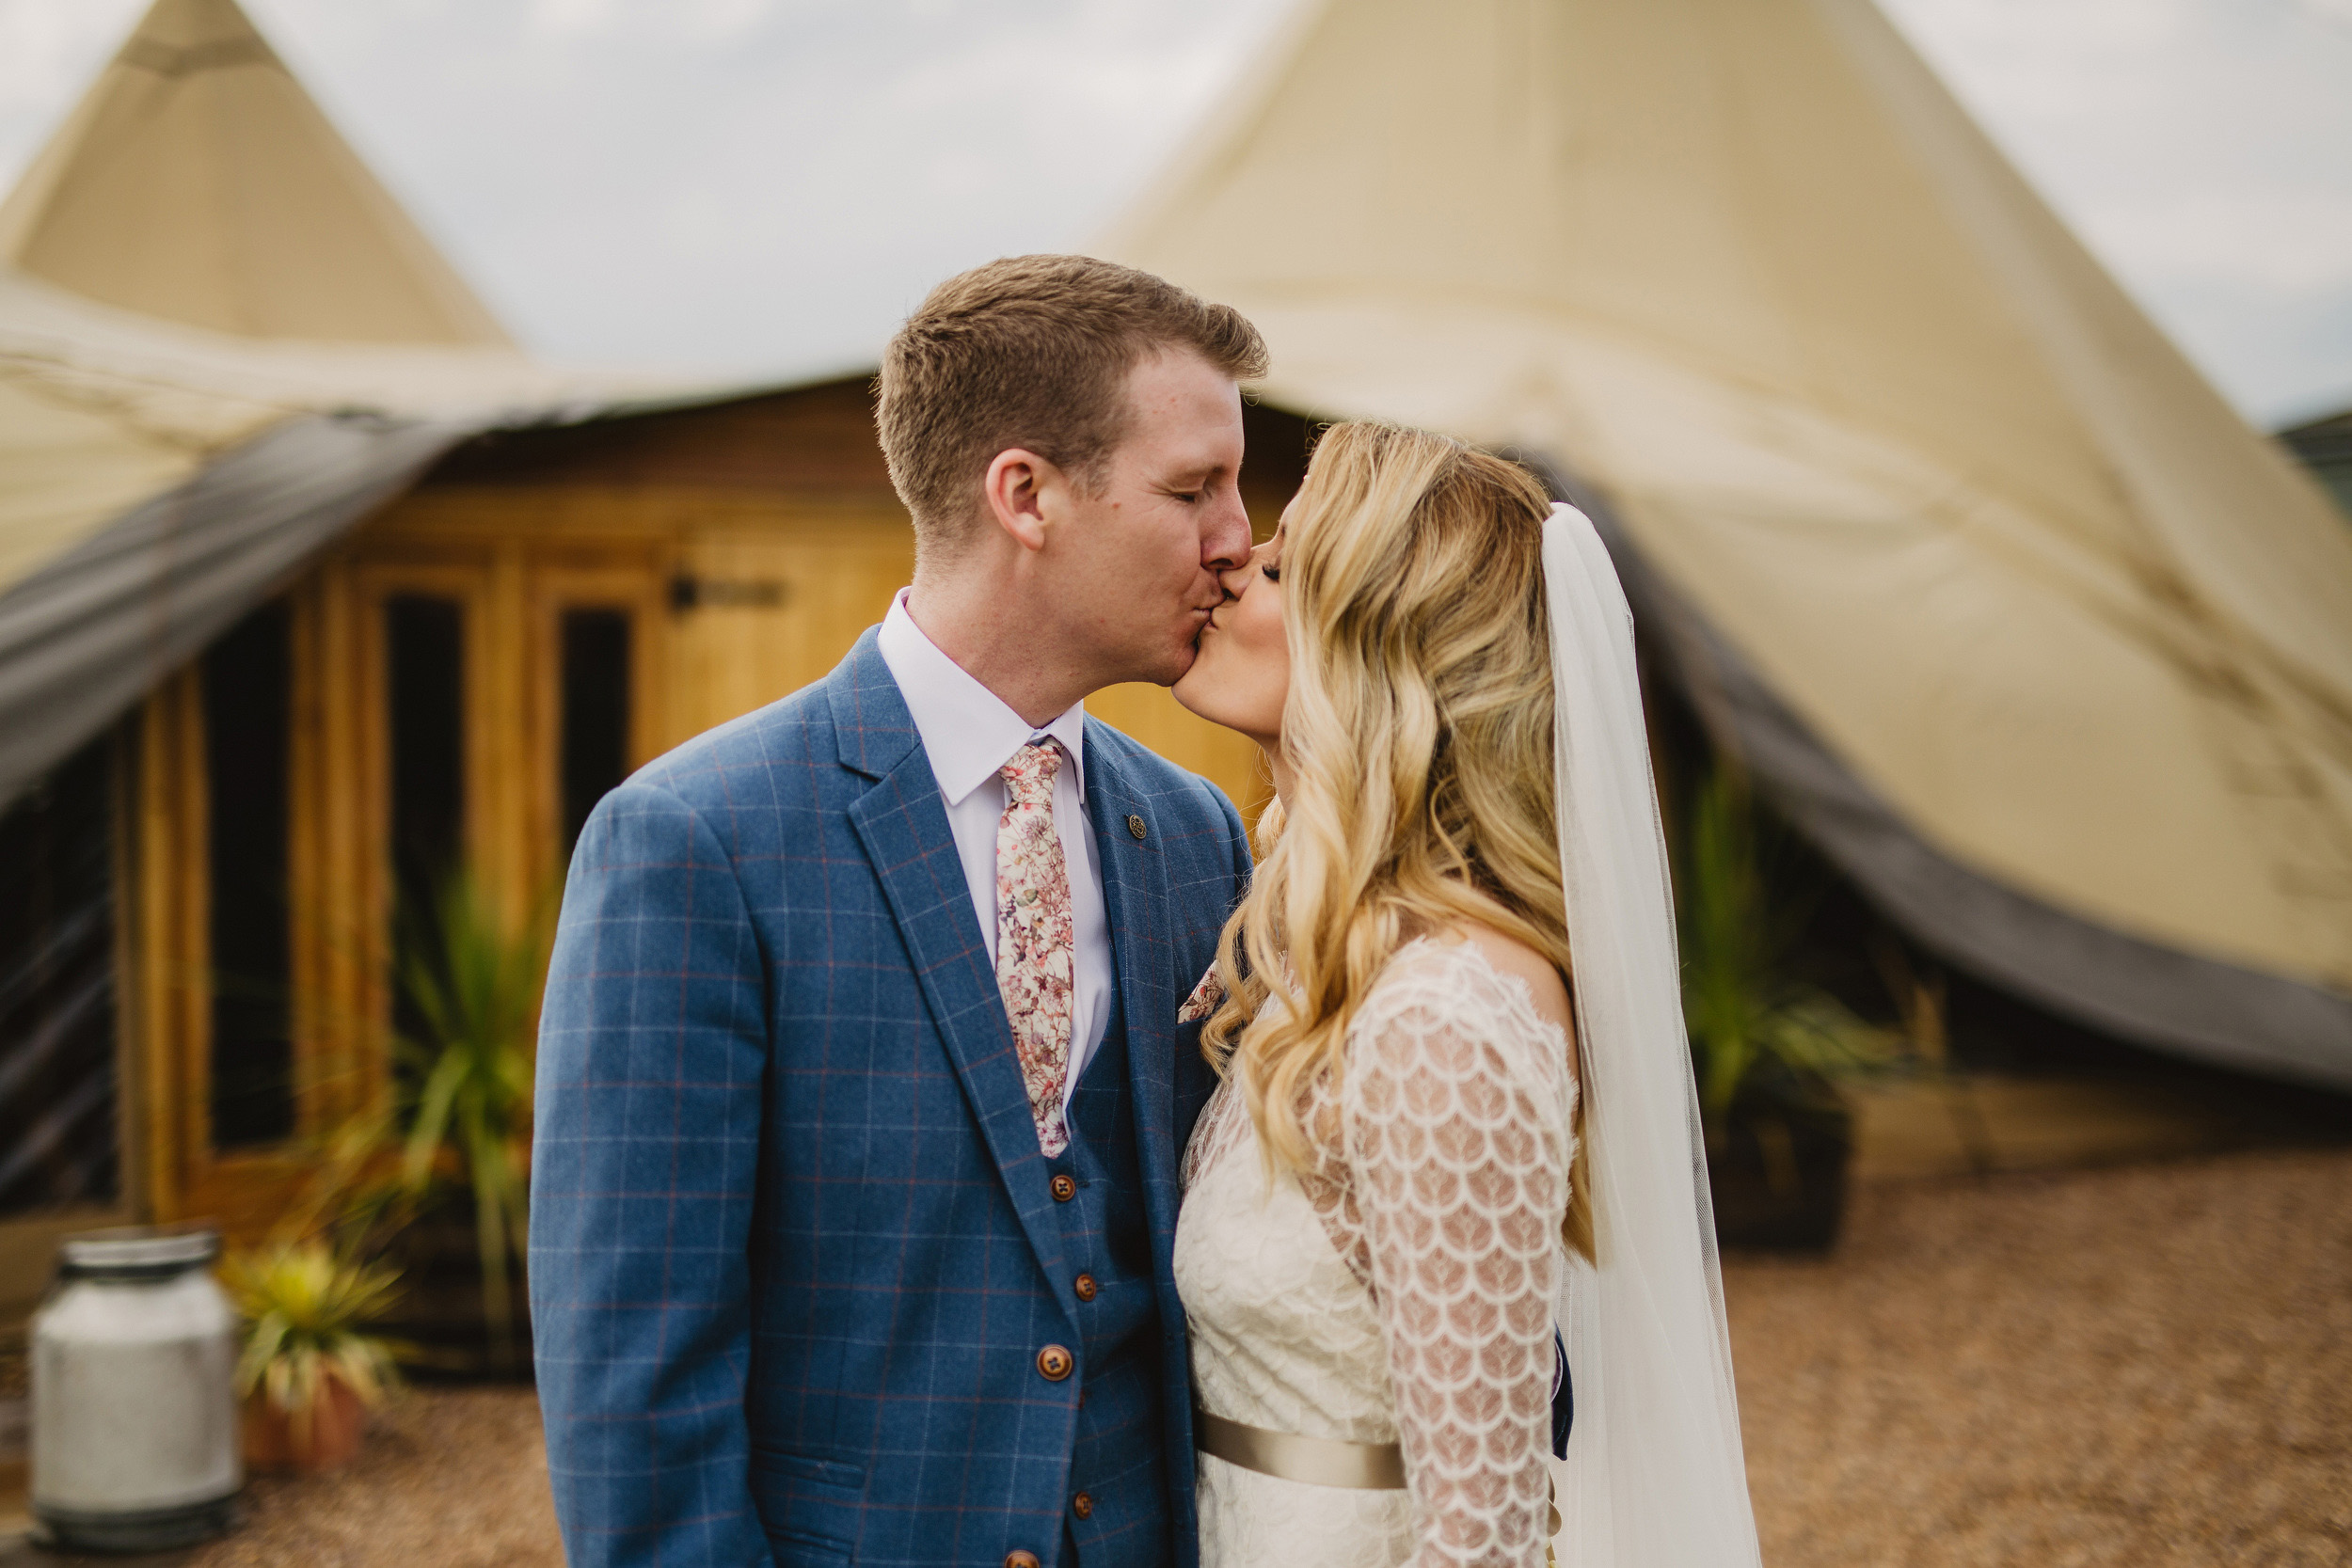 Gemma-Bohemian-Outdoor-Tipi-Wedding-Laid-Back-Relaxed-Family-Wedding-Kate-Beaumont-Astilbe-by-S6-Photography-Sheffield-26.jpg